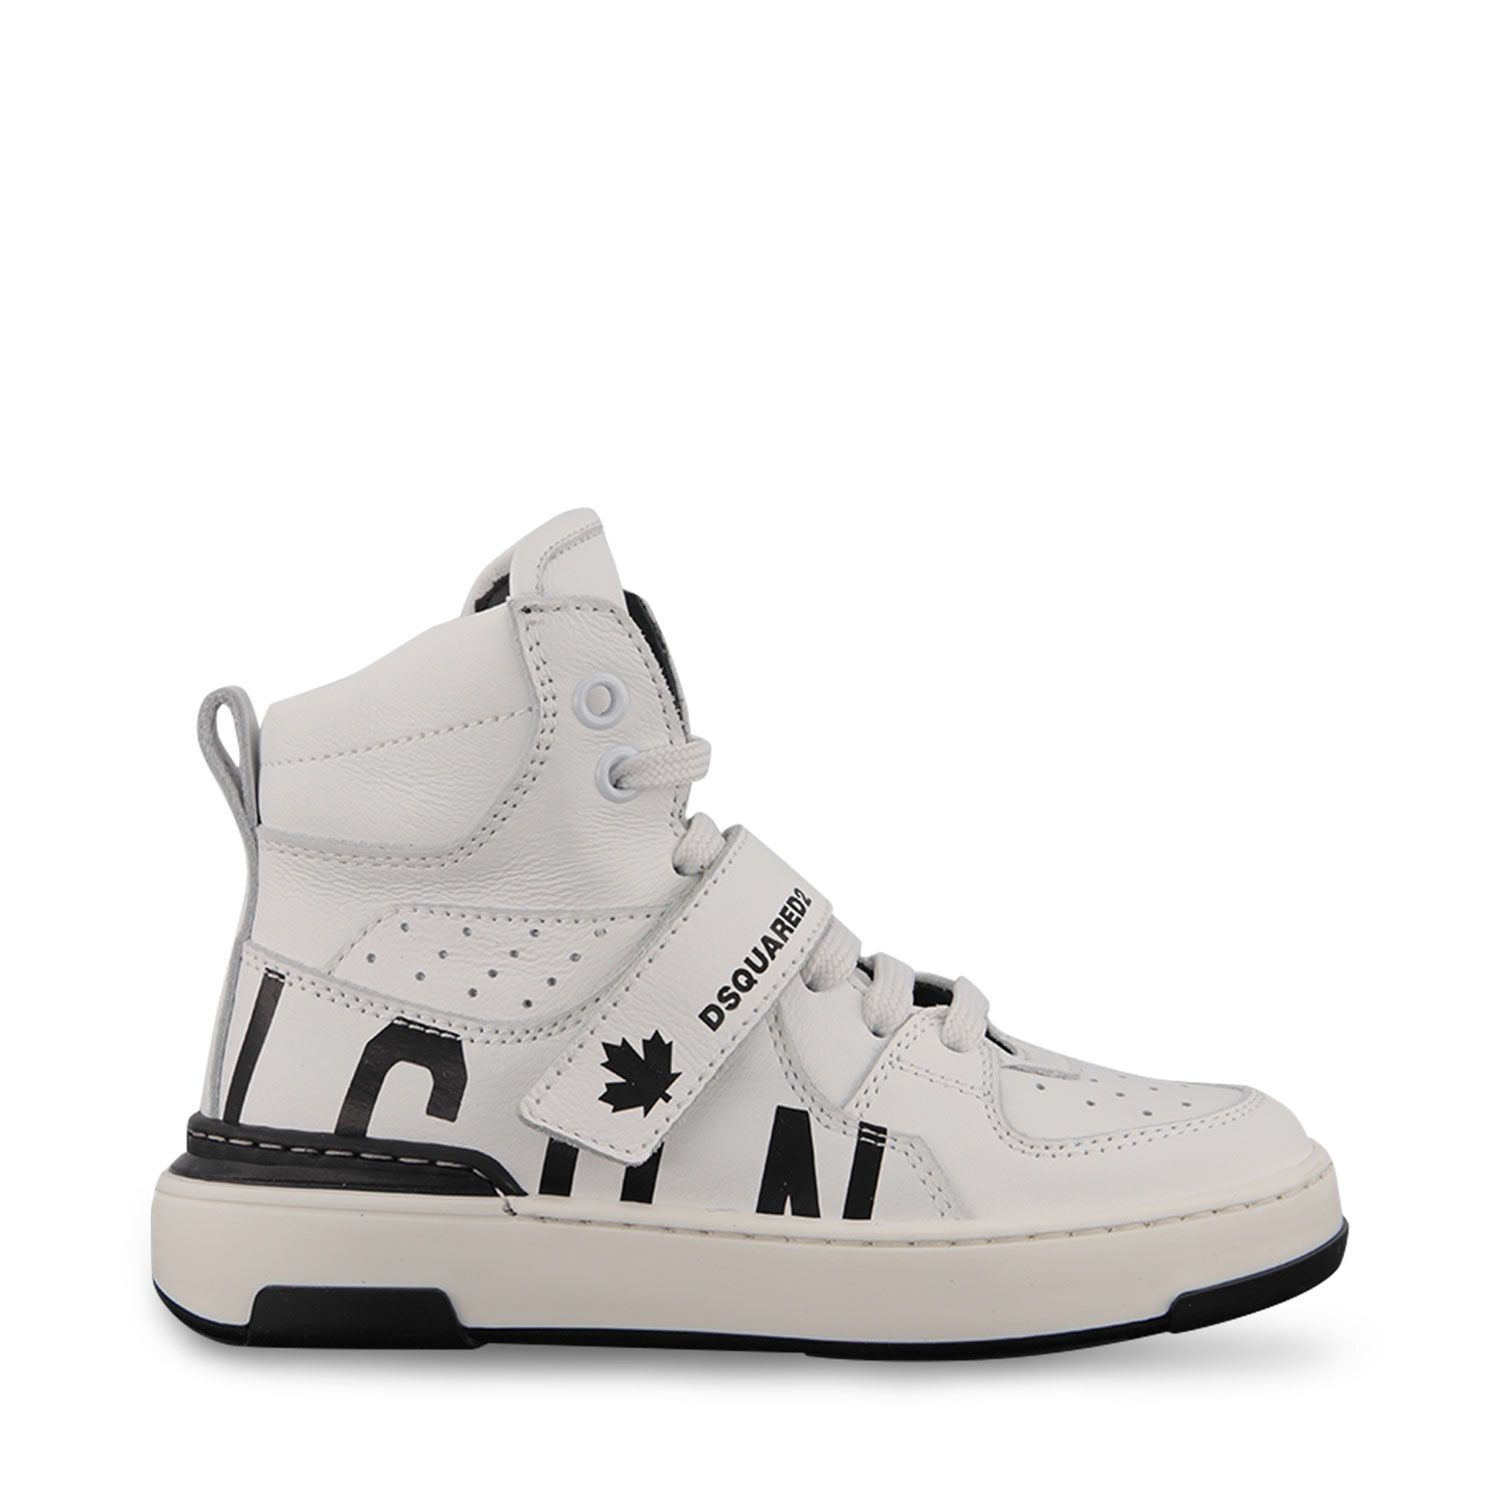 Picture of Dsquared2 68667 kids sneakers white